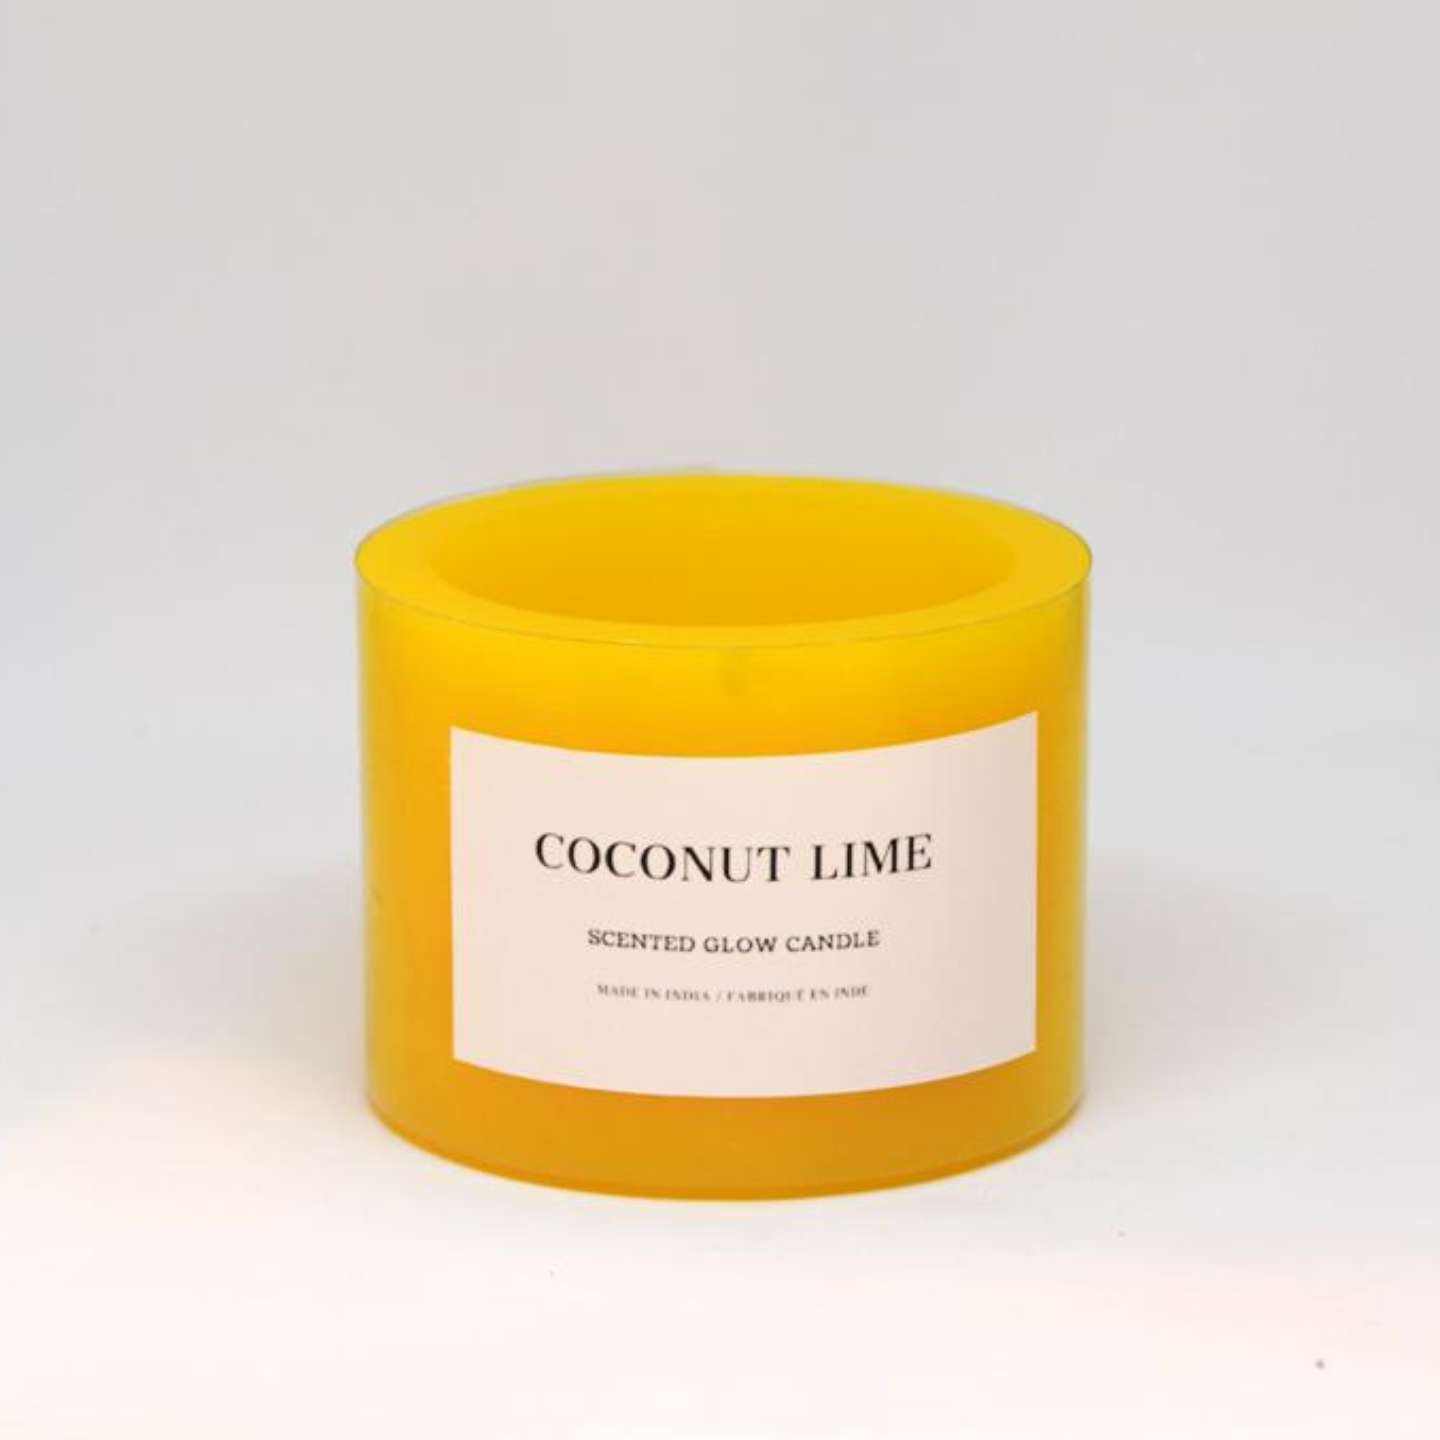 Scented Glow Candle - Coconut Lime